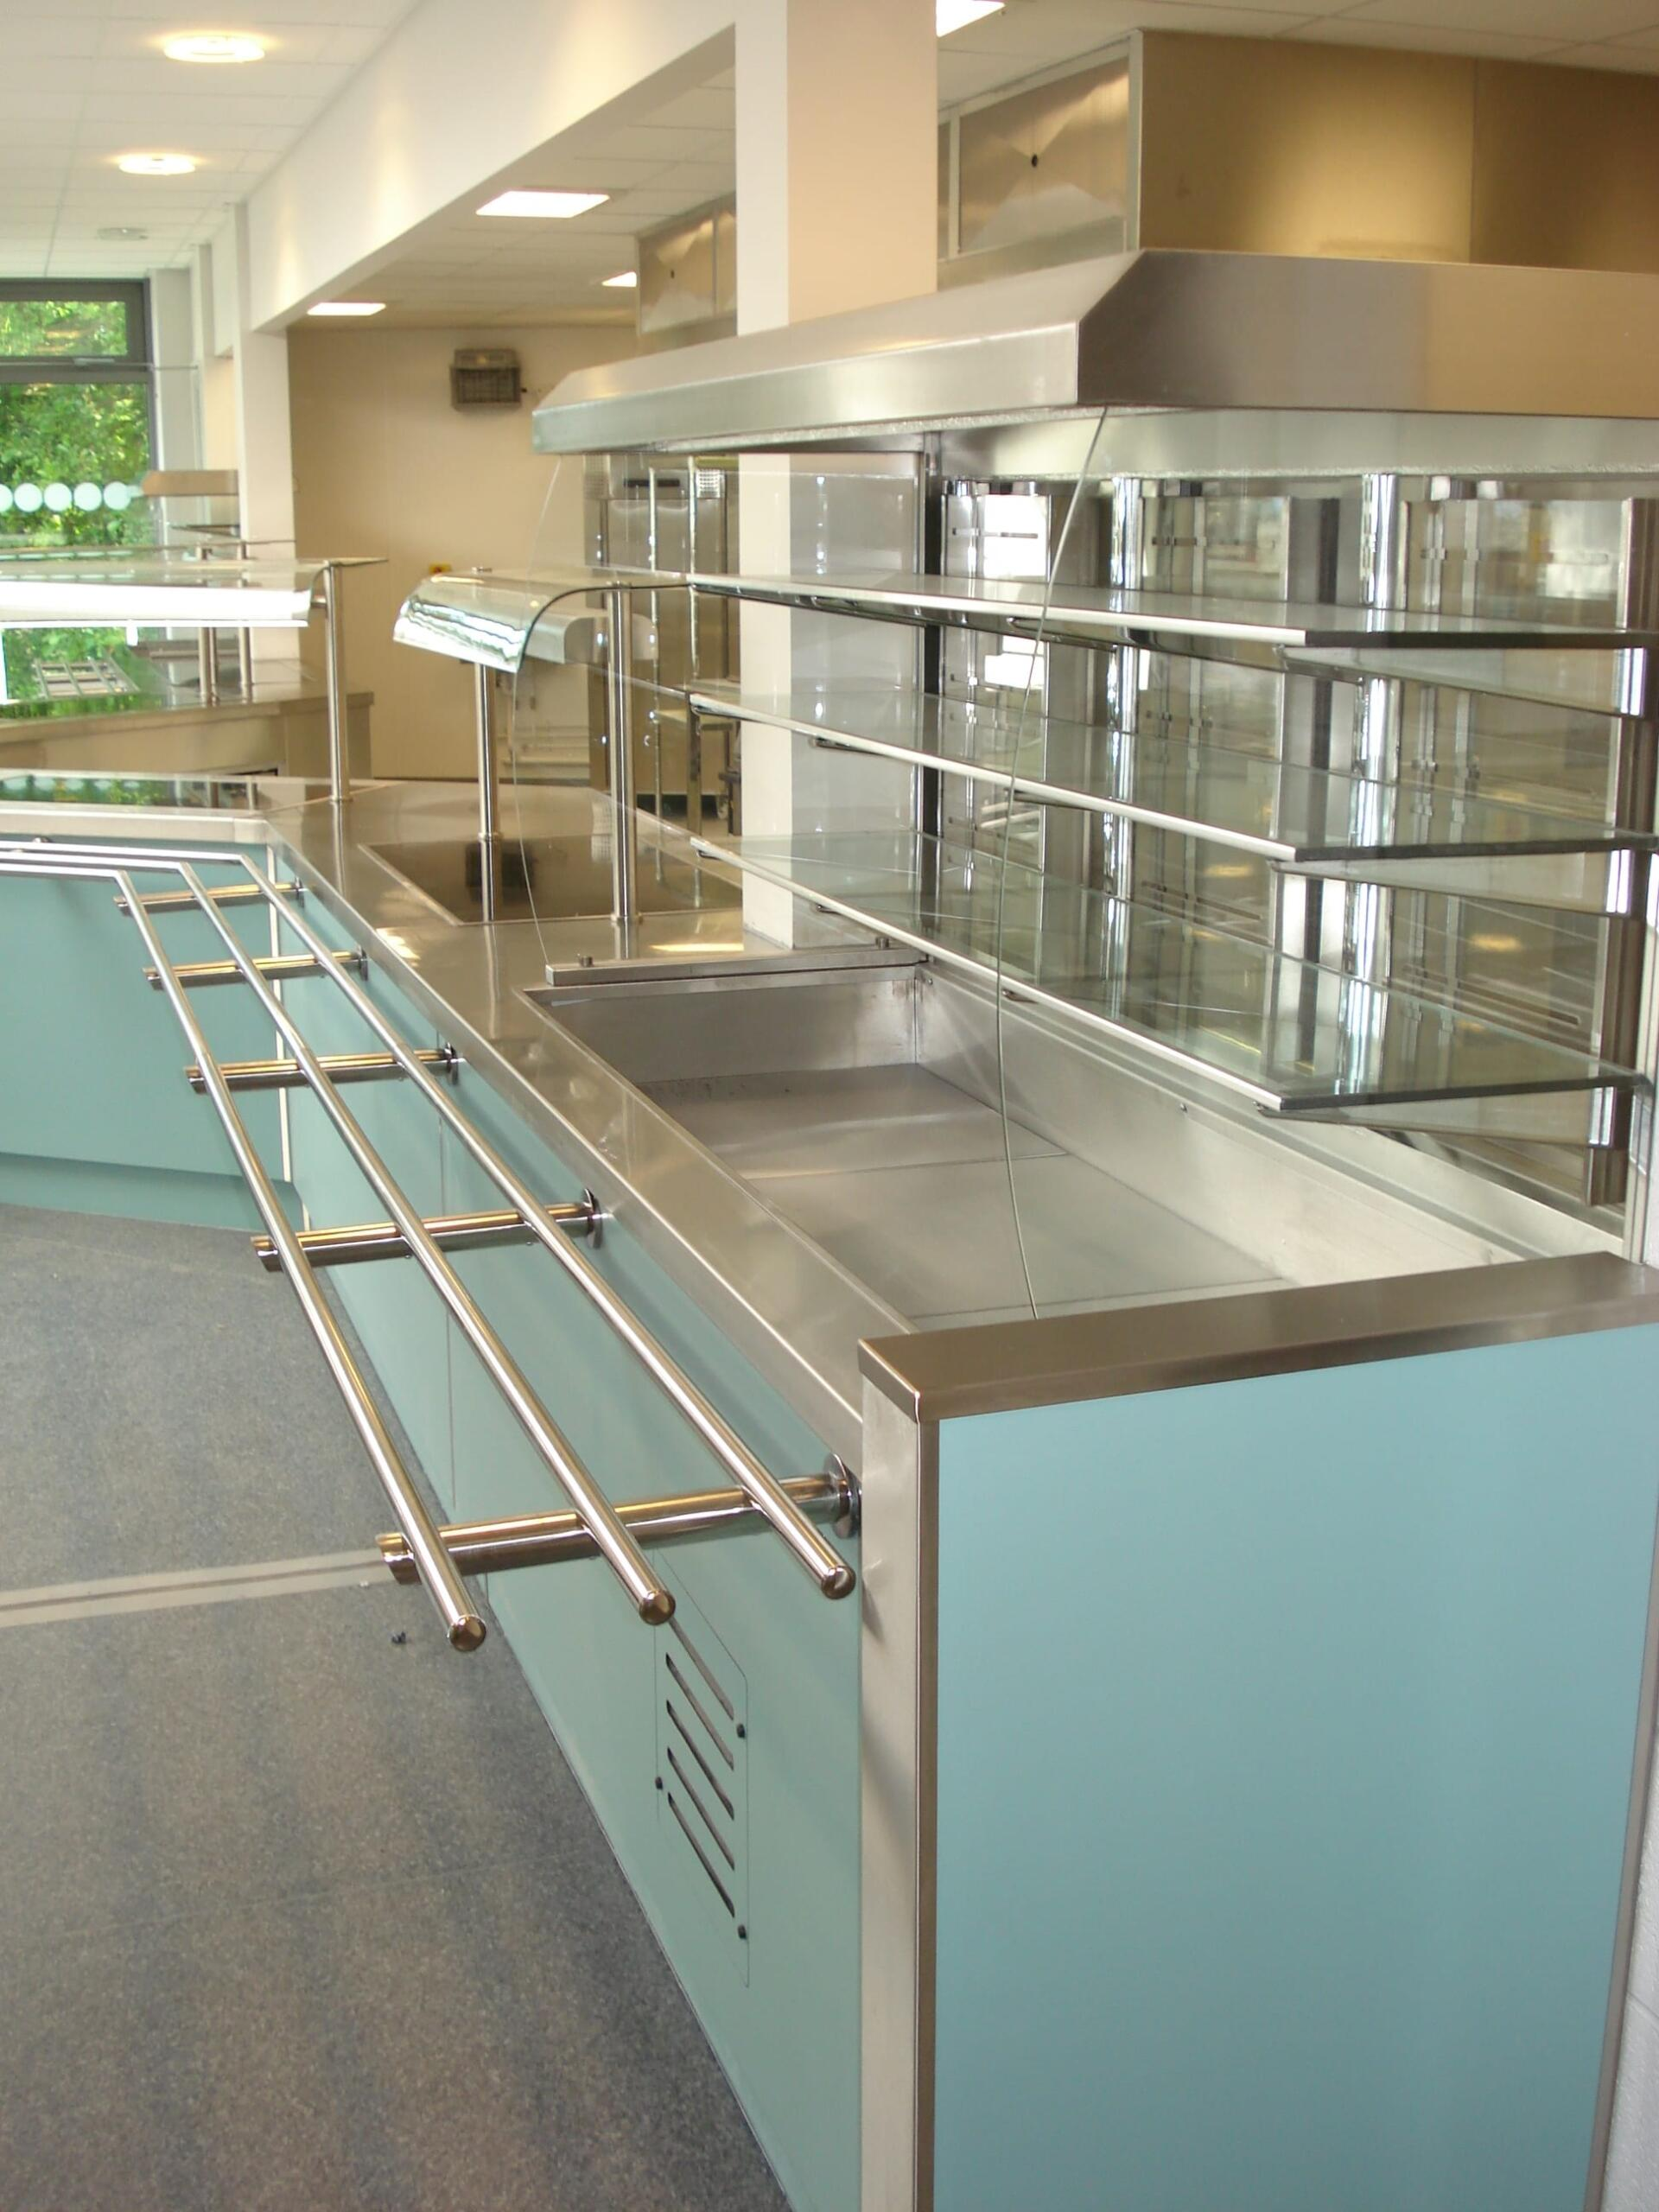 Gloucester-College-Gloucester-Servery-Stainless-Steel-fabrication-cooking-Foodtech-teaching-spacecatering_7